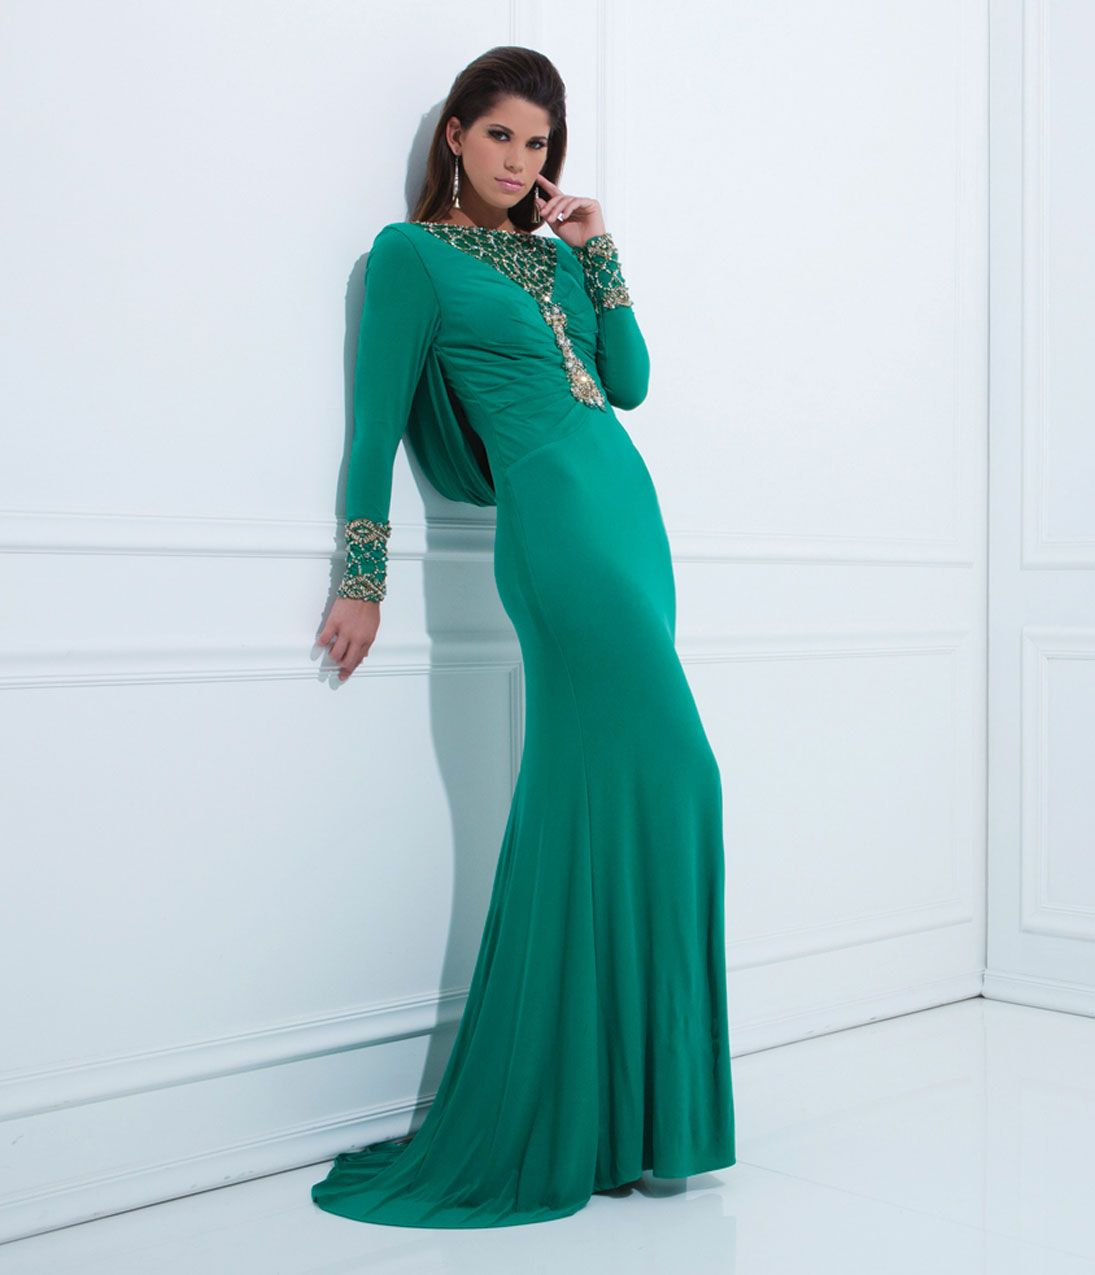 Dresses-Green_Jersey_Mesh_Long_Sleeve_Prom_Gown- | Long Sleeve ...